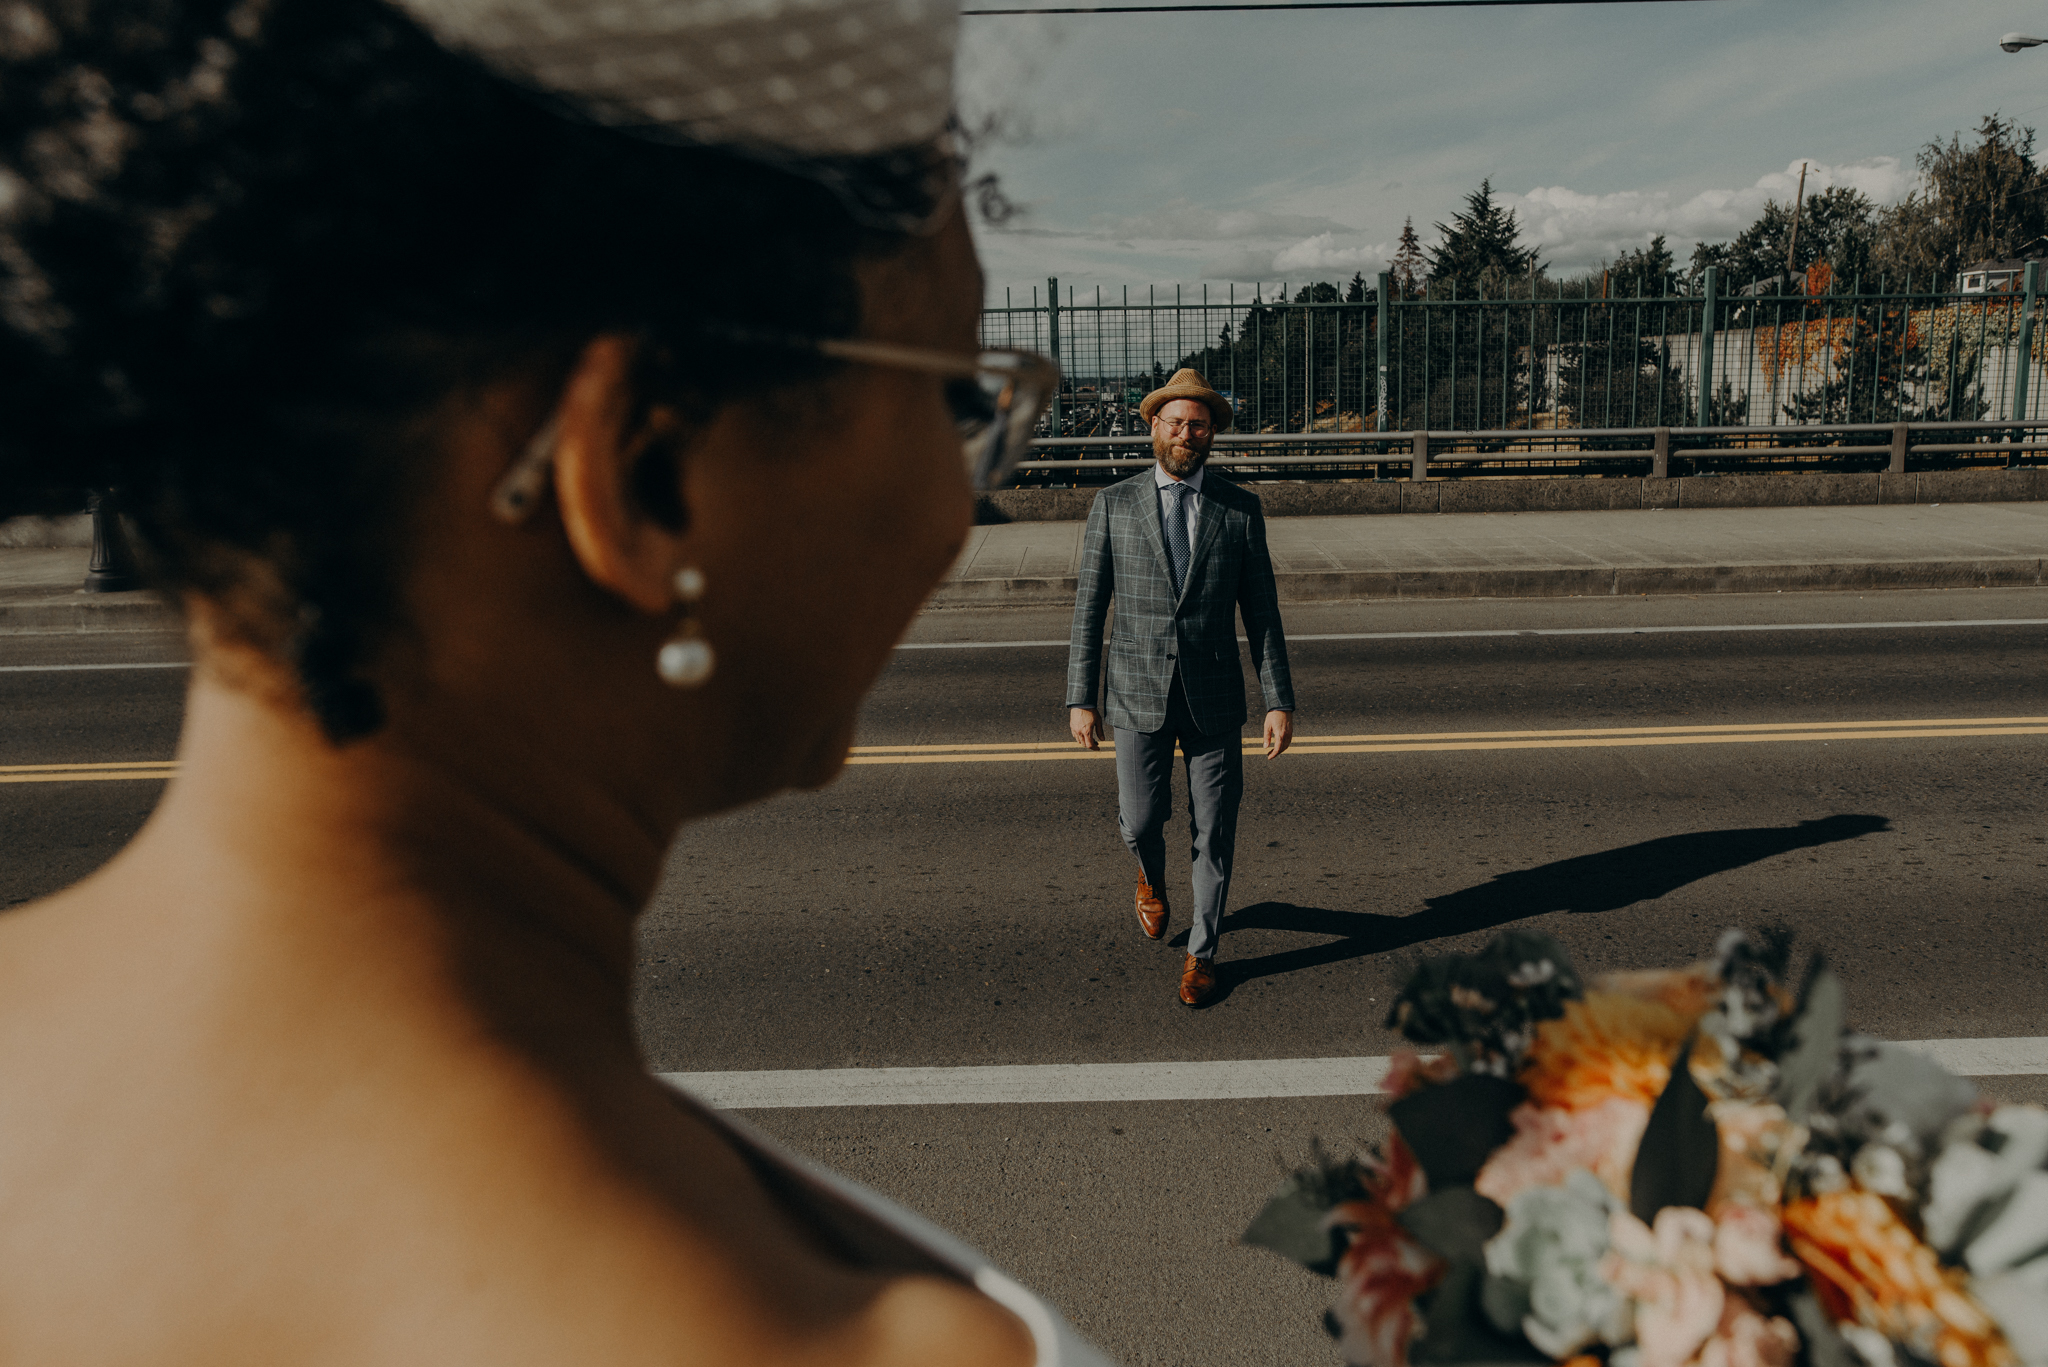 Los Angeles Wedding Photographer - Portland Elopement Photographer - IsaiahAndTaylor.com-081.jpg